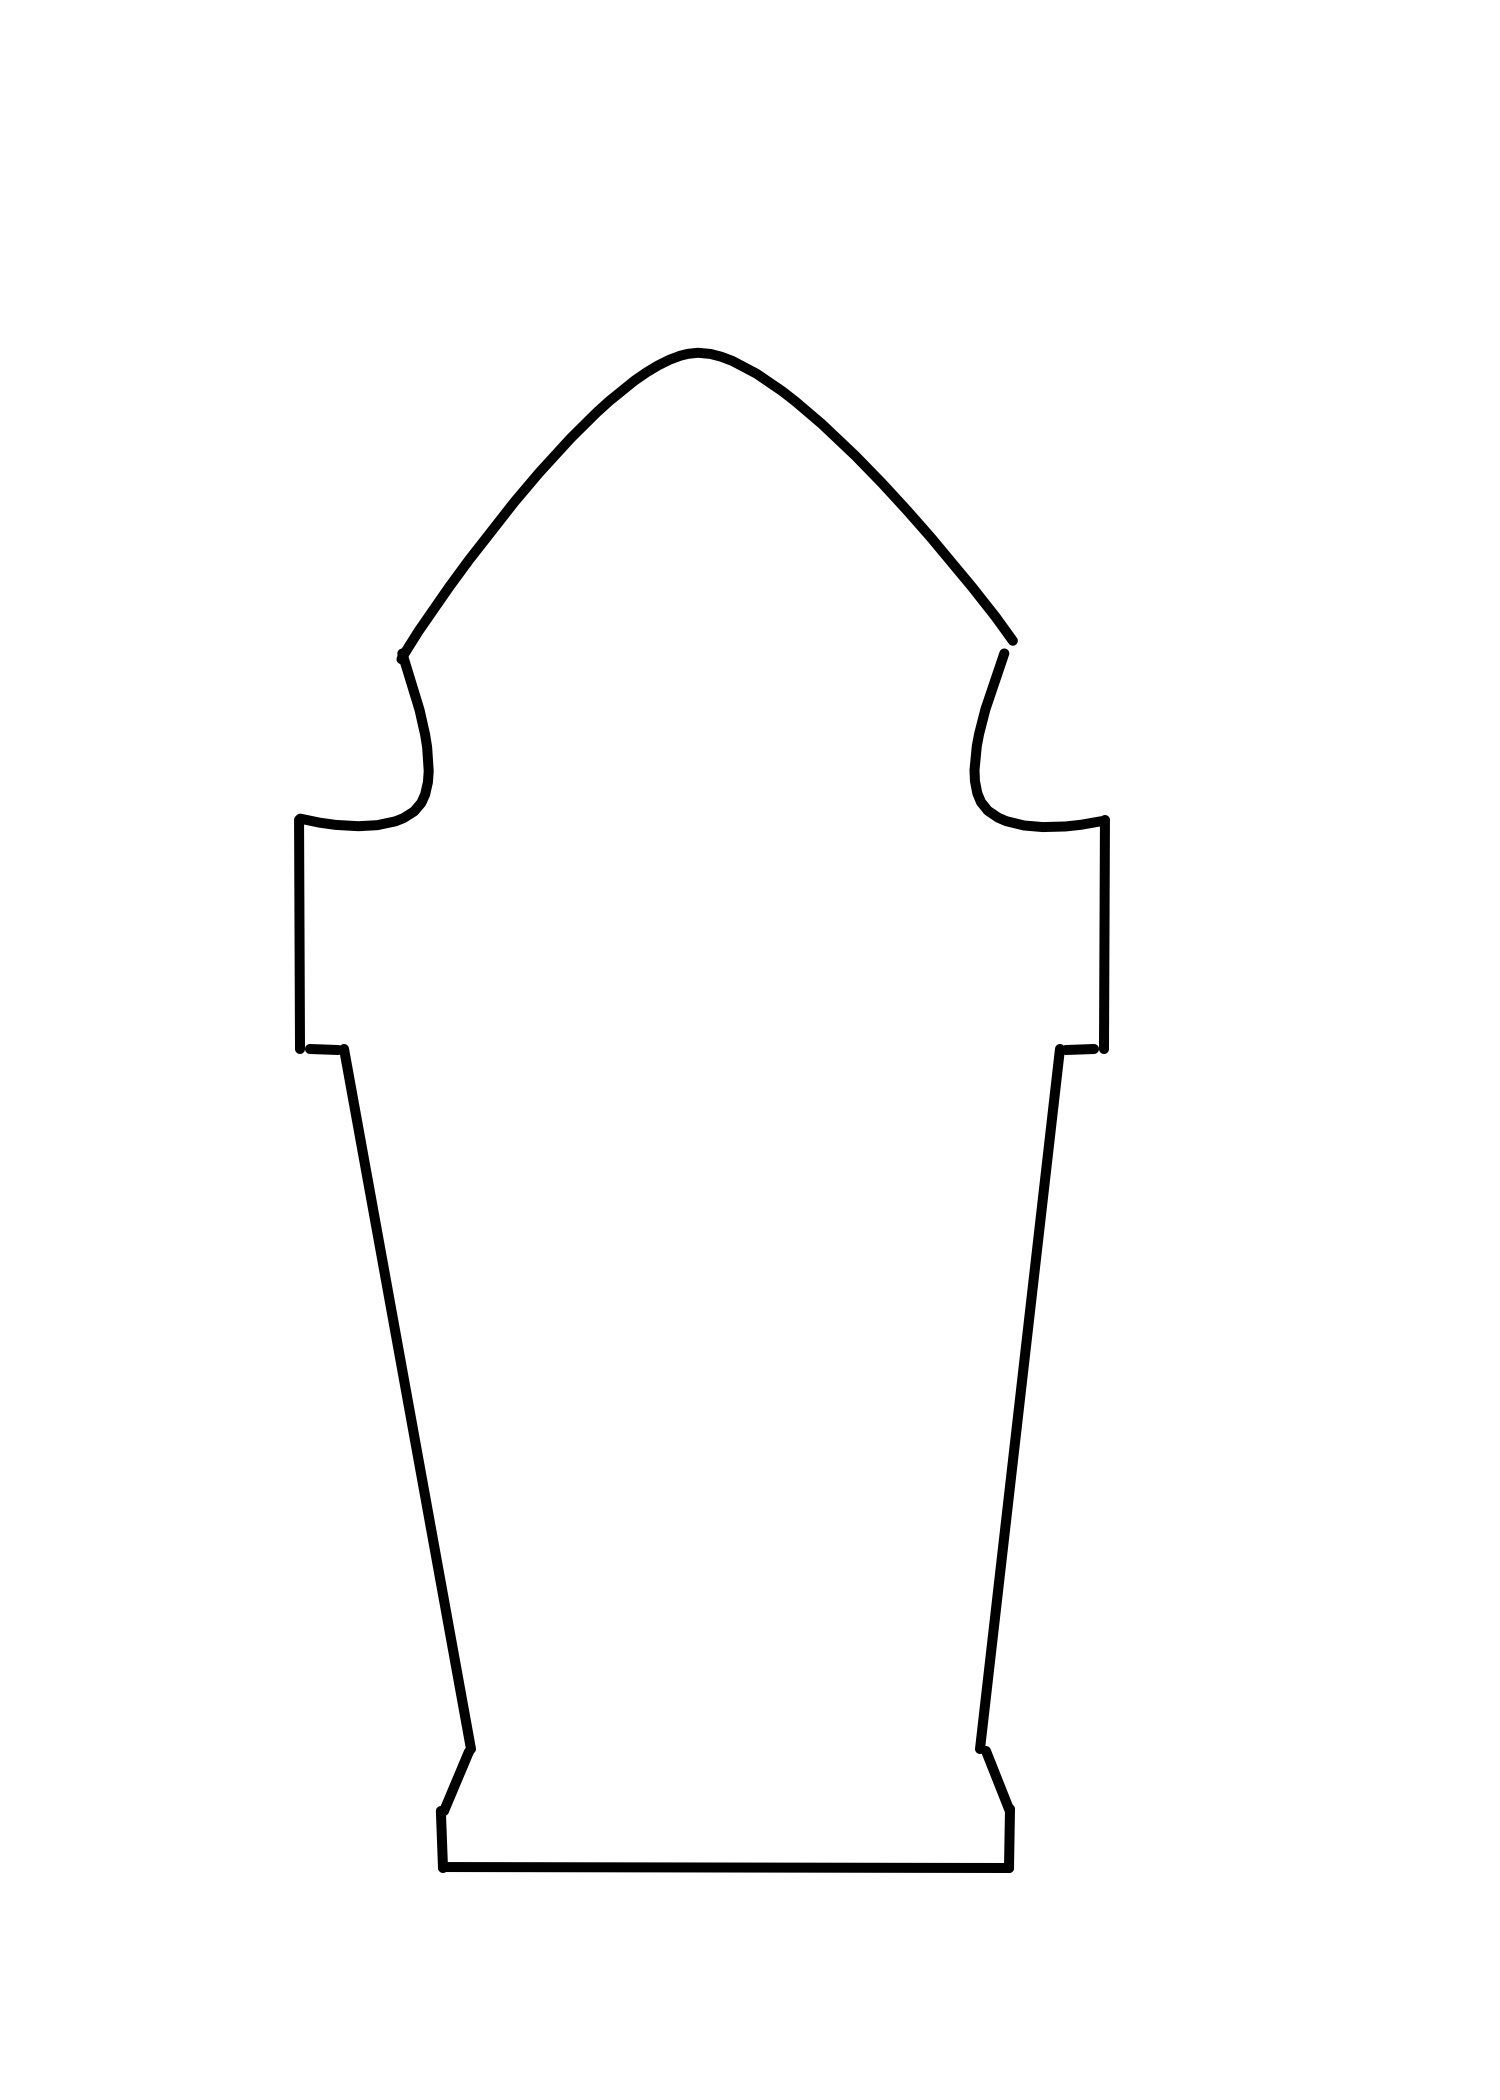 photo relating to Tombstone Template Printable referred to as Spooky Do-it-yourself Halloween Chalkboard Tombstones Generated inside of a Working day